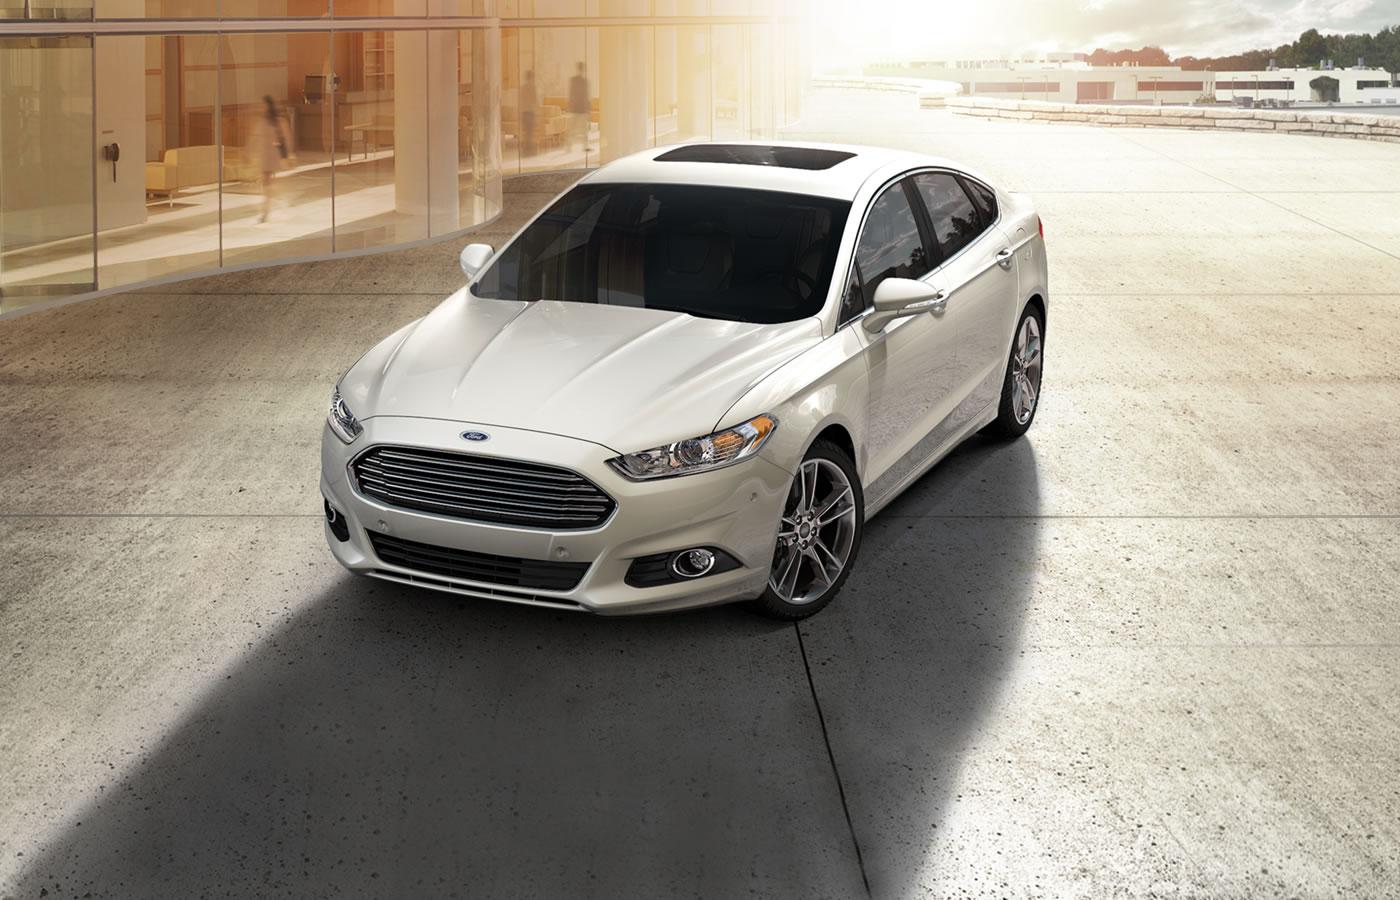 Lease A Ford Fusion For $153/Month $0 Down ($132/ & Woah! Lease A Ford Fusion For $153/Month $0 Down ($132/Month For ... markmcfarlin.com